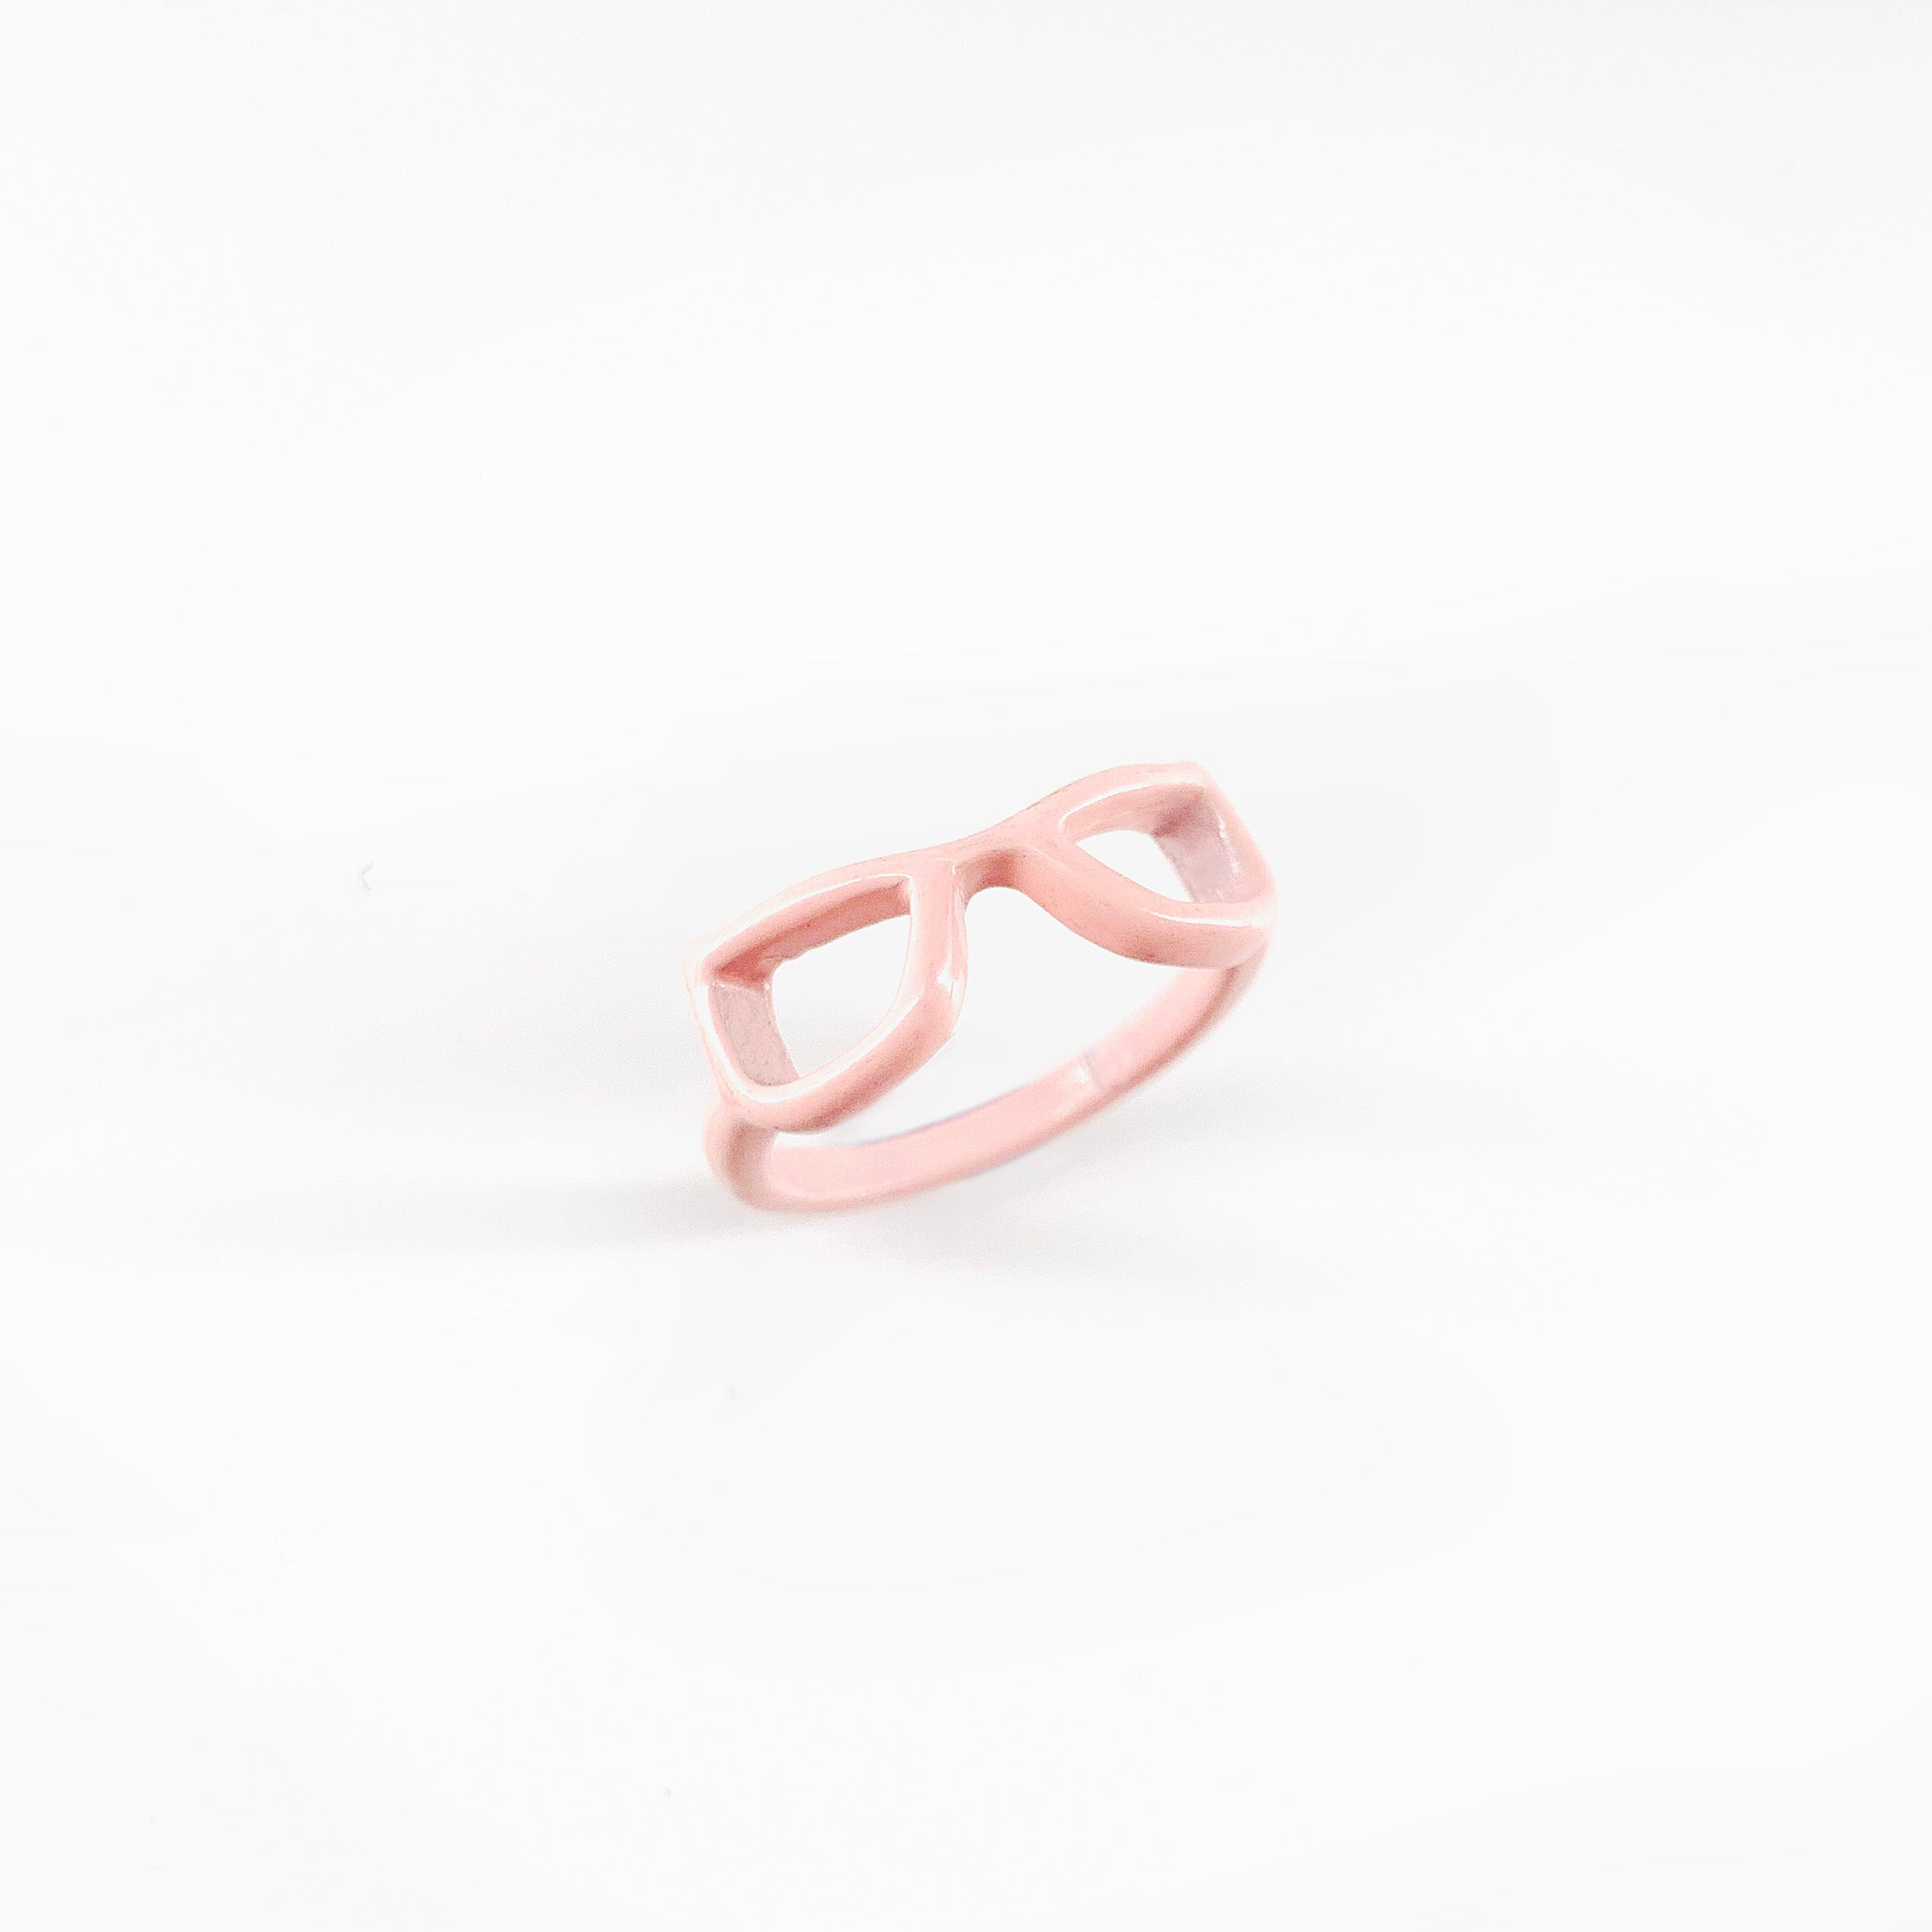 Enamel painted pale pink Sunglasses ring